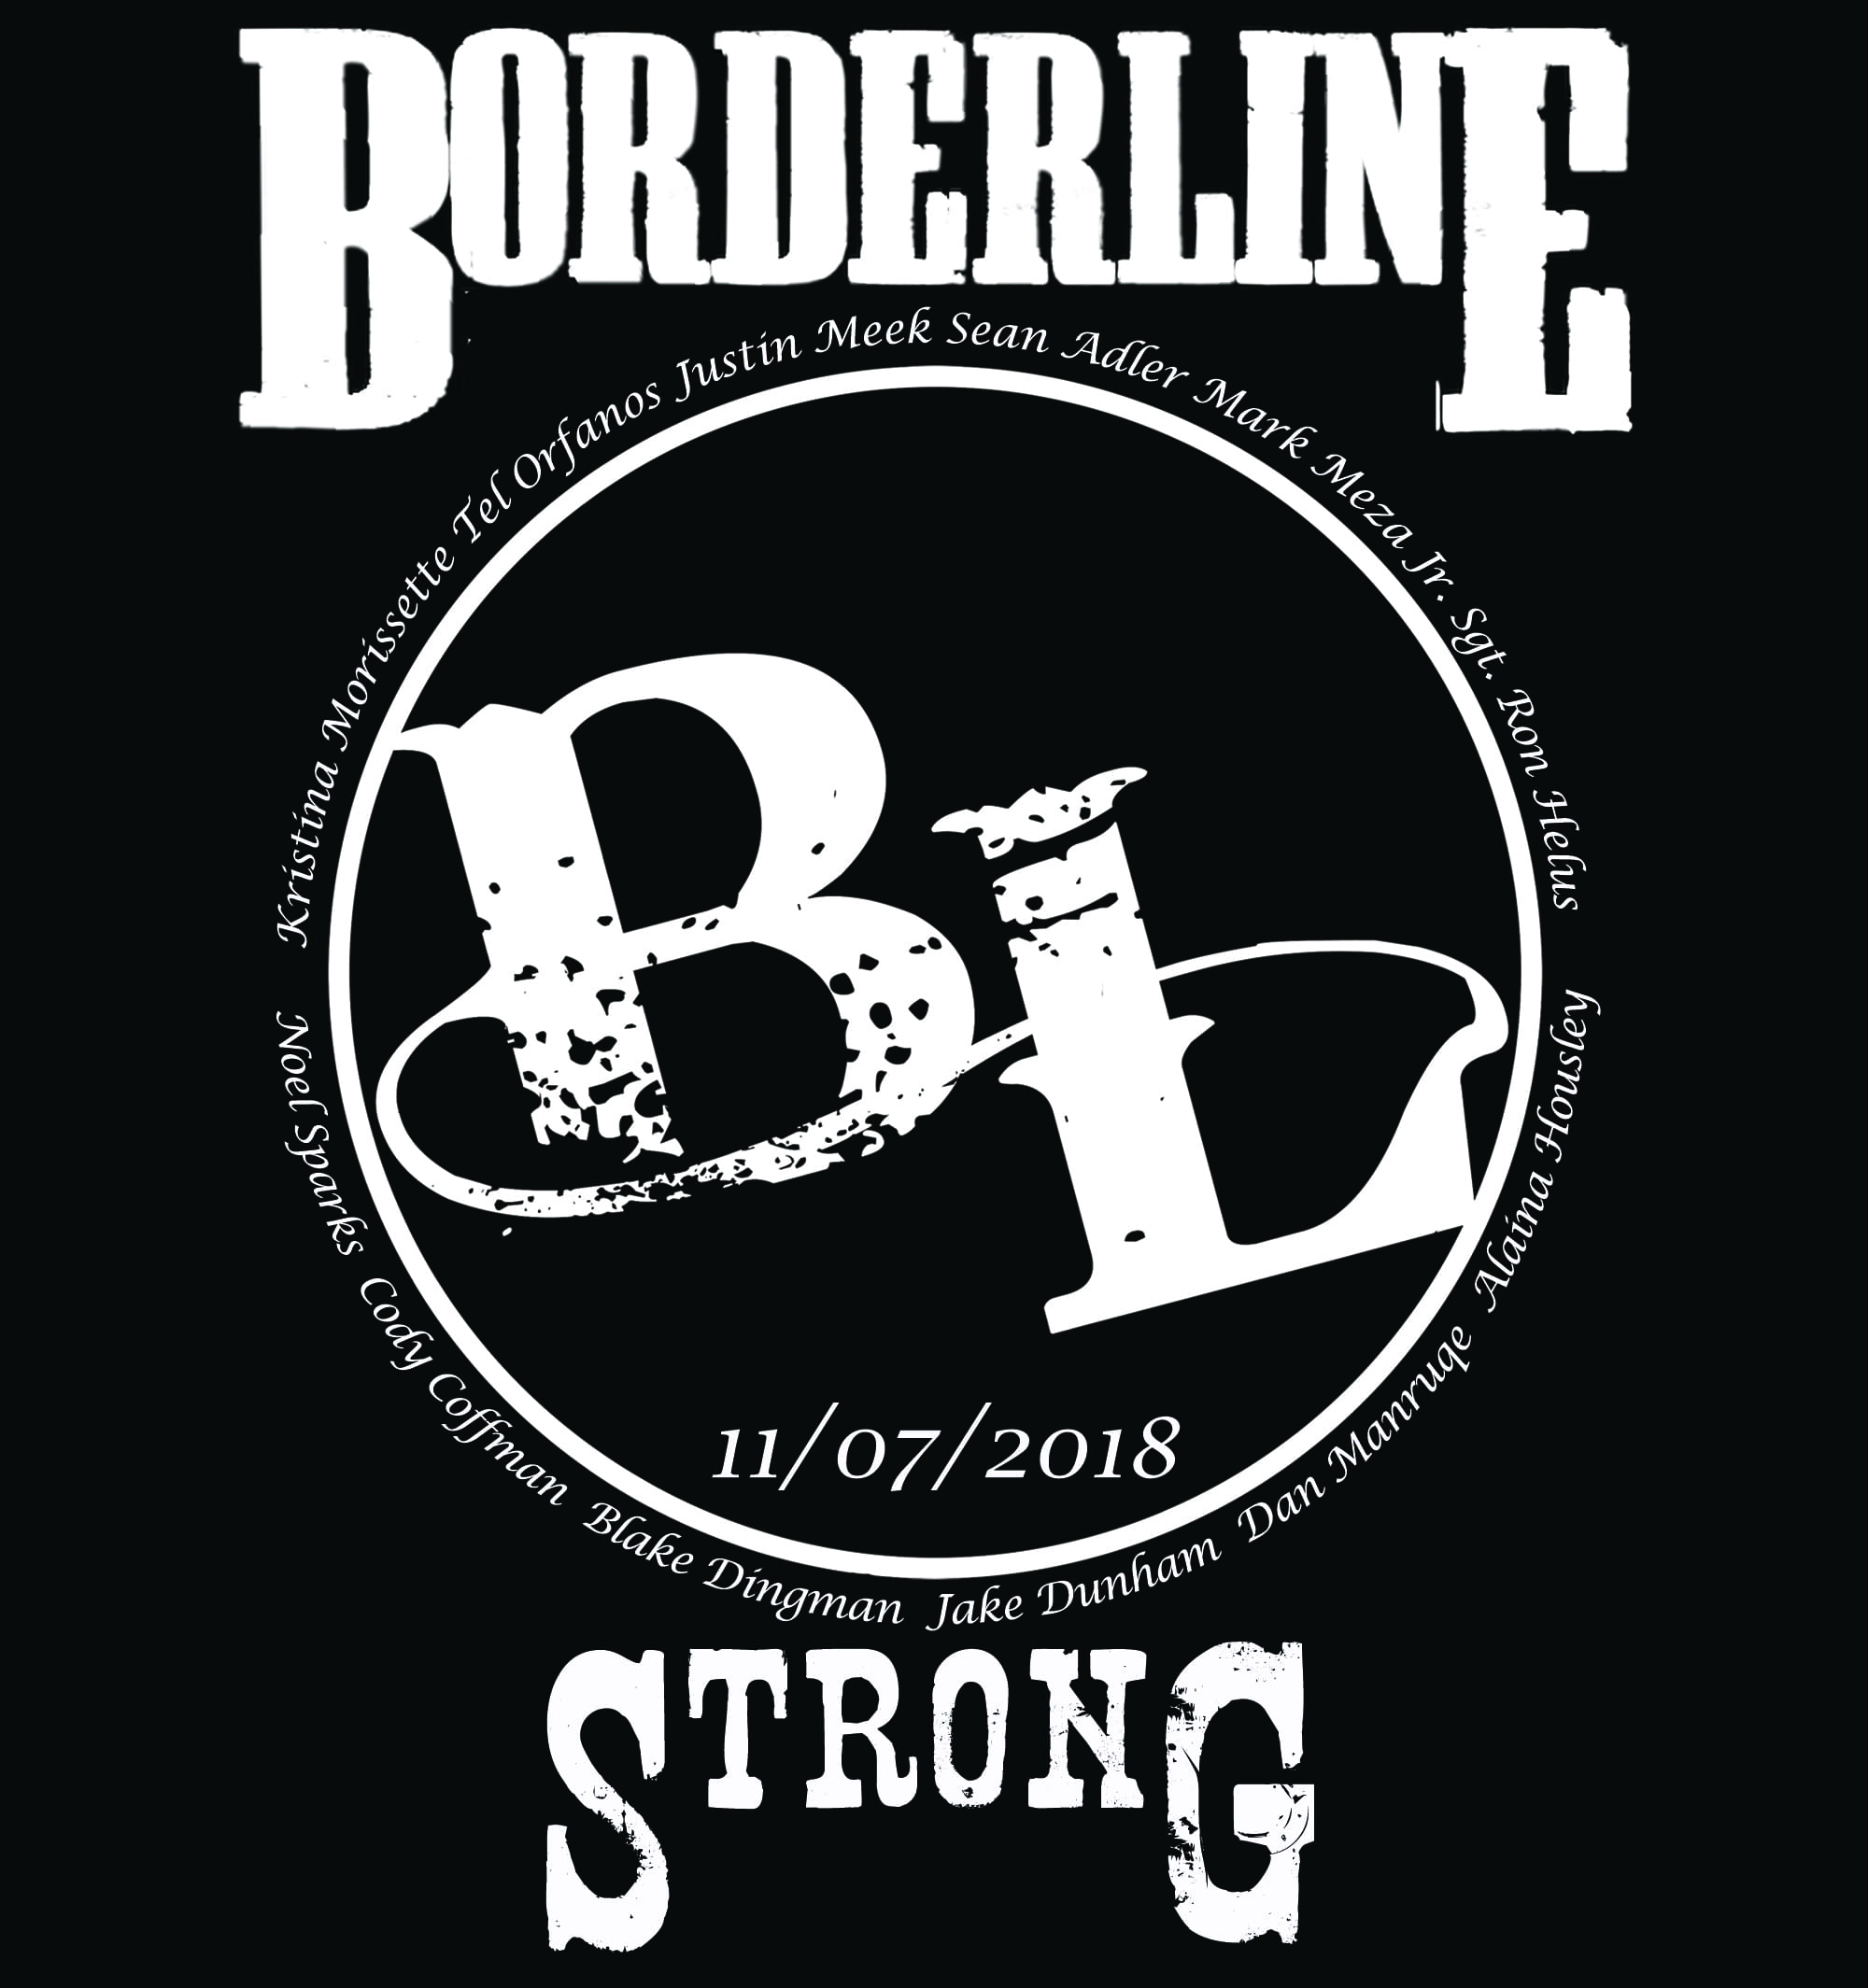 On-Air Tribute to The Borderline 12 and those affected by the tragedy.